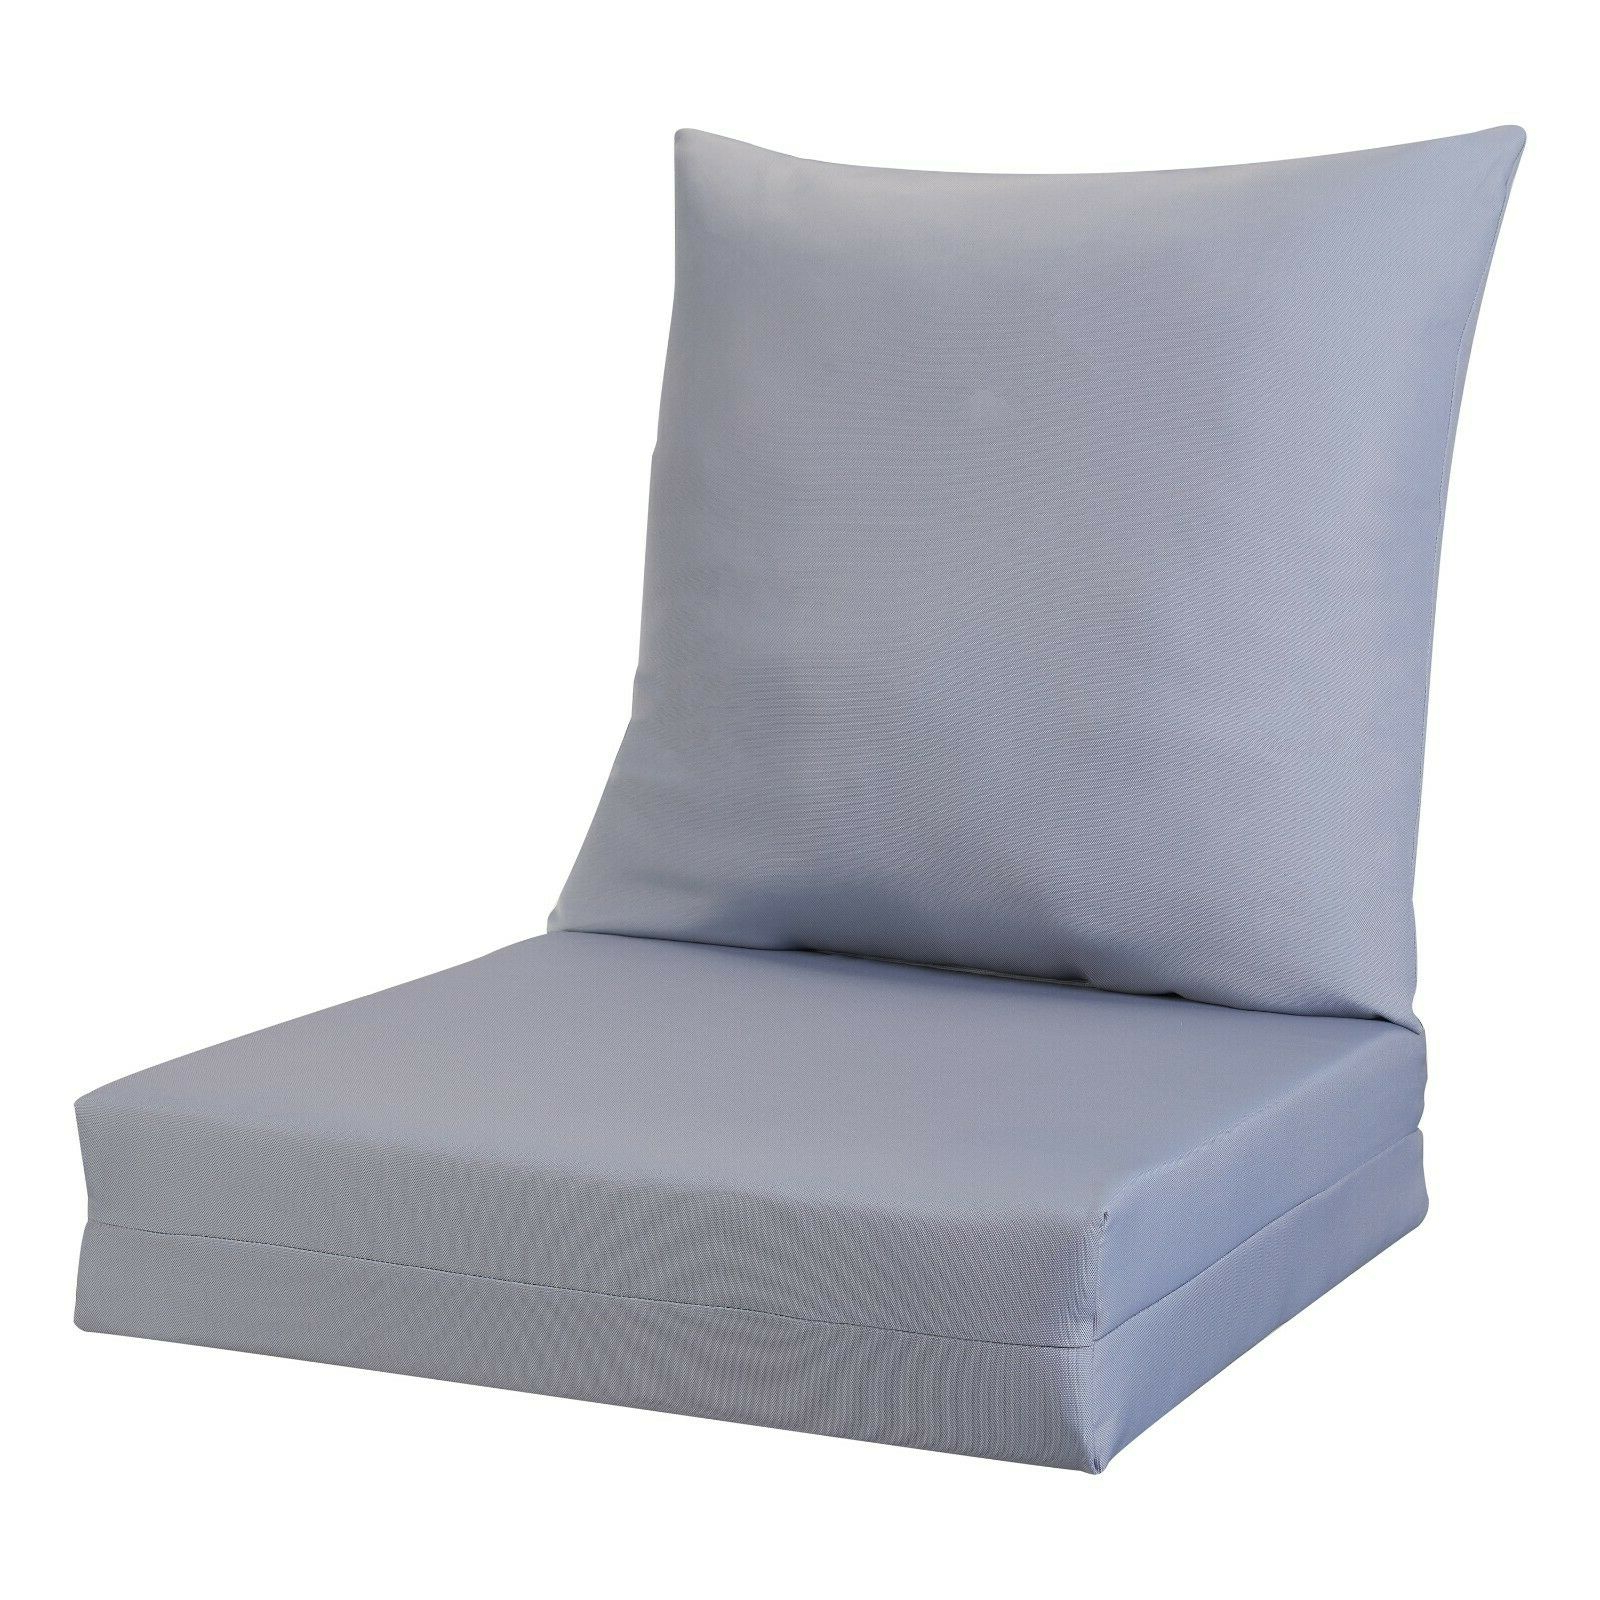 Newest Cushioned Glider Benches With Cushions With Regard To Better Homes And Gardens Solid Deep Seat Cushion Set – Grey (Gallery 21 of 30)